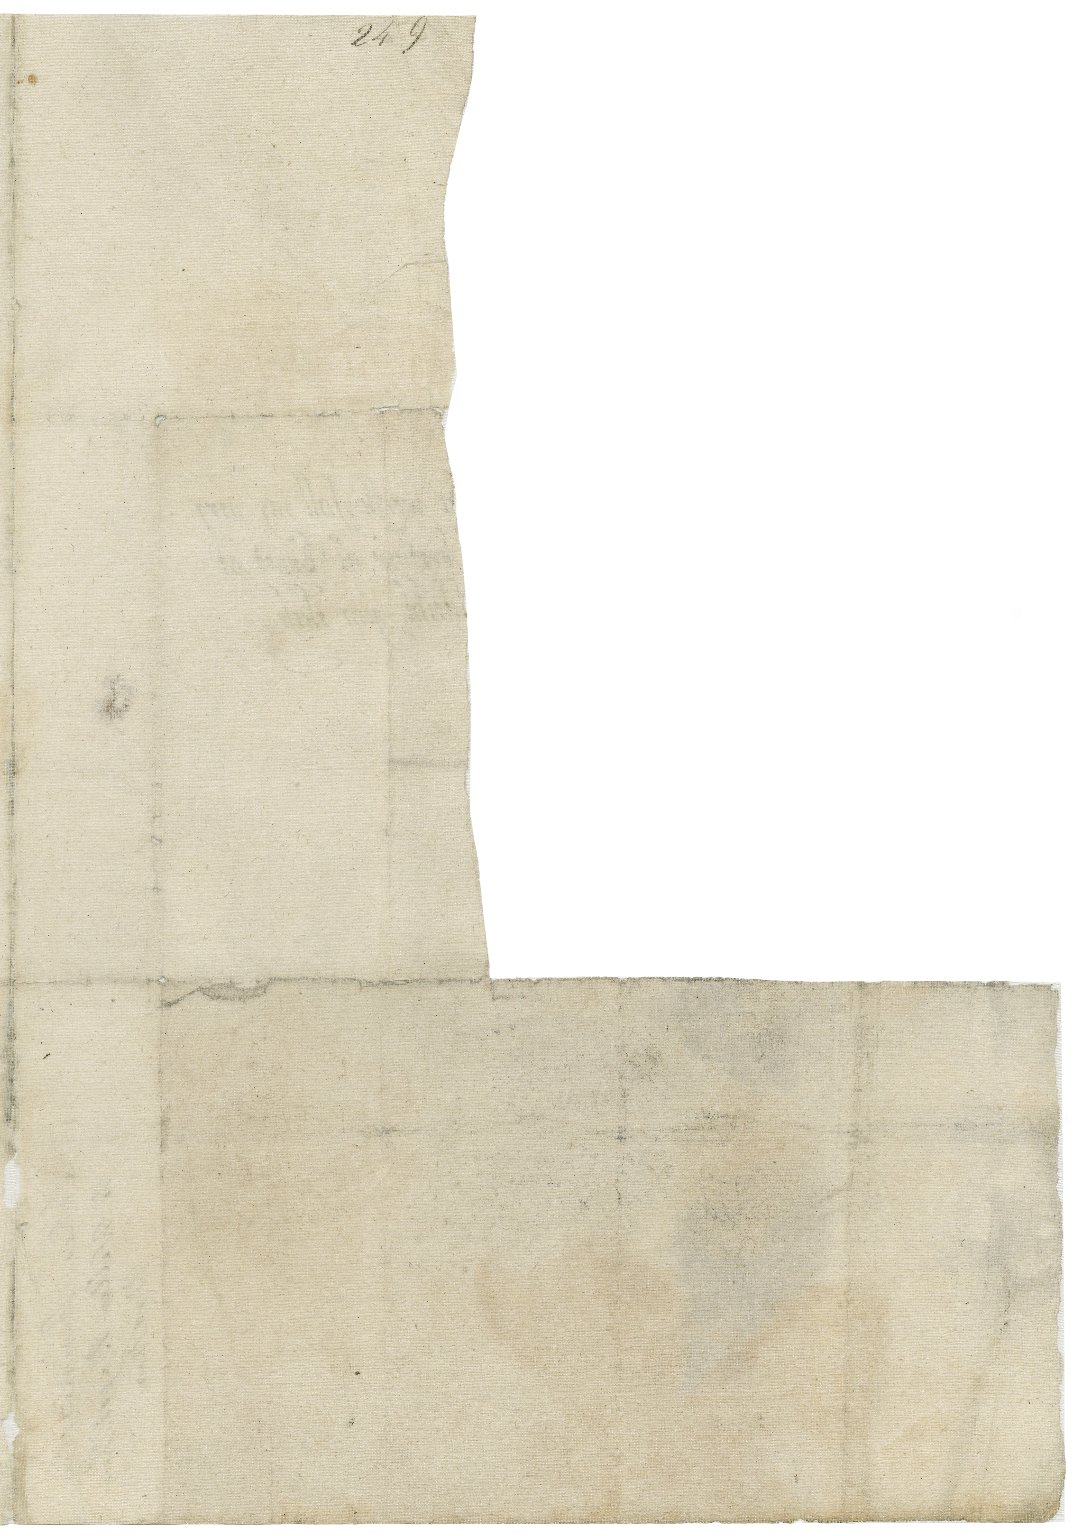 Letter from Lettice Kynnersley, Badger, to Walter Bagot